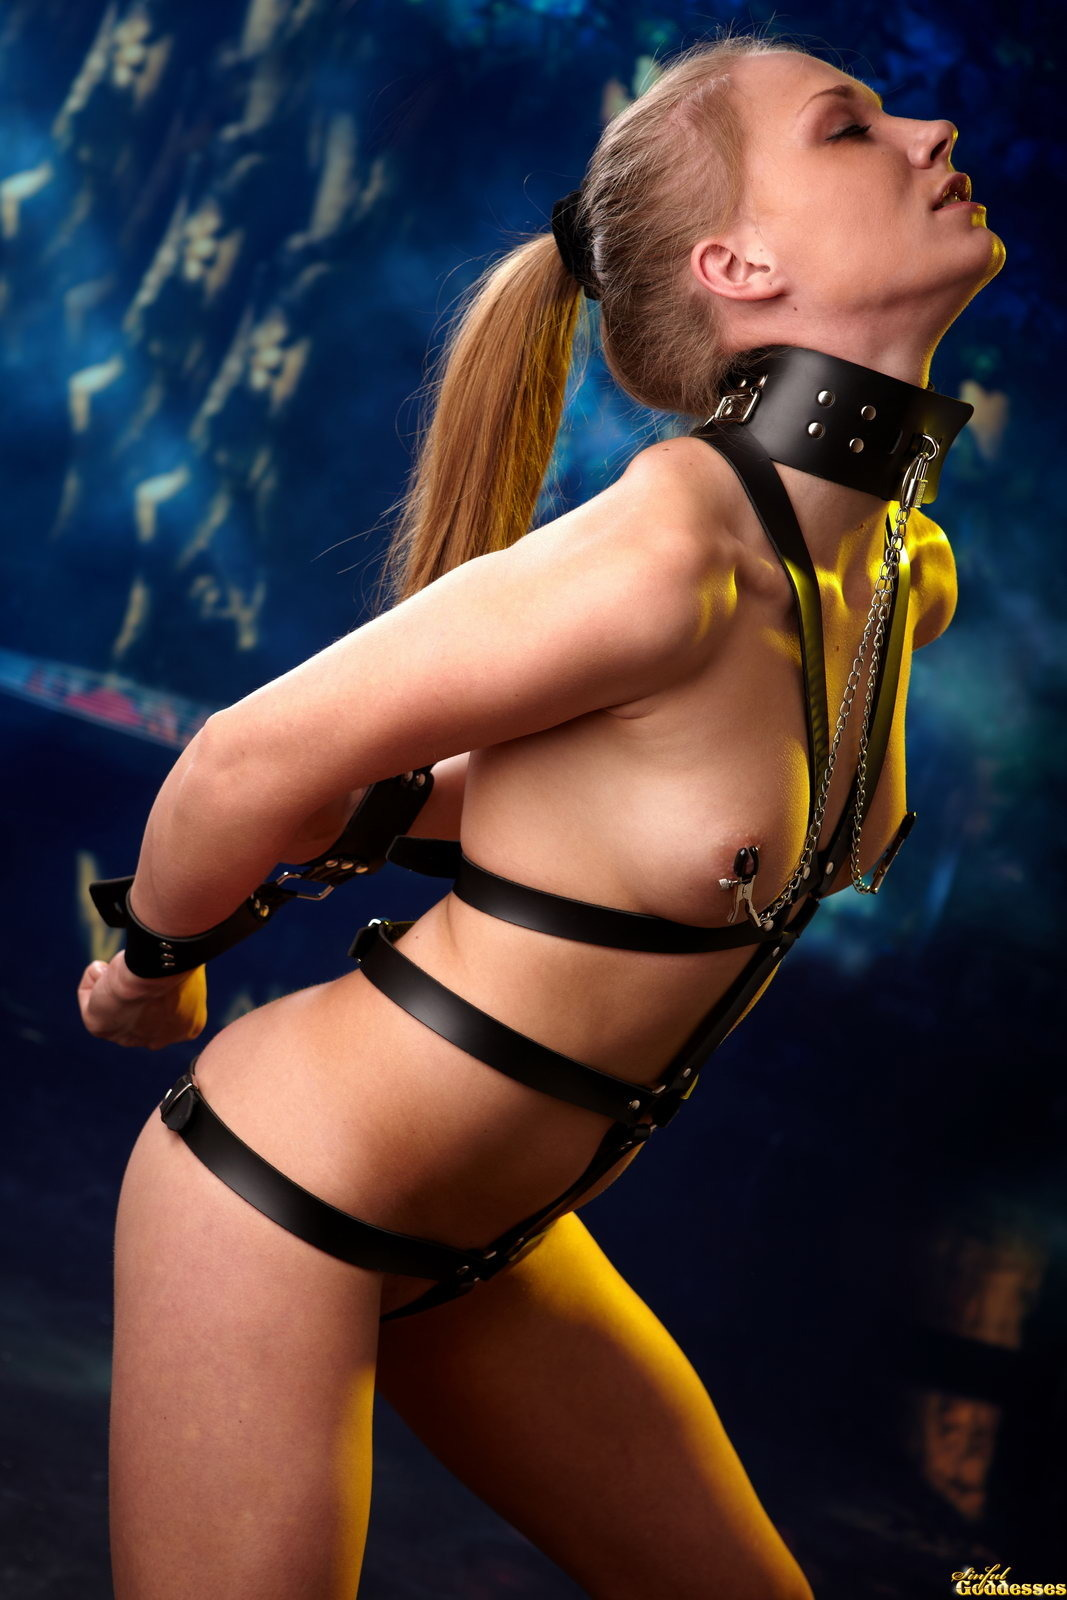 Leather BDSM harness